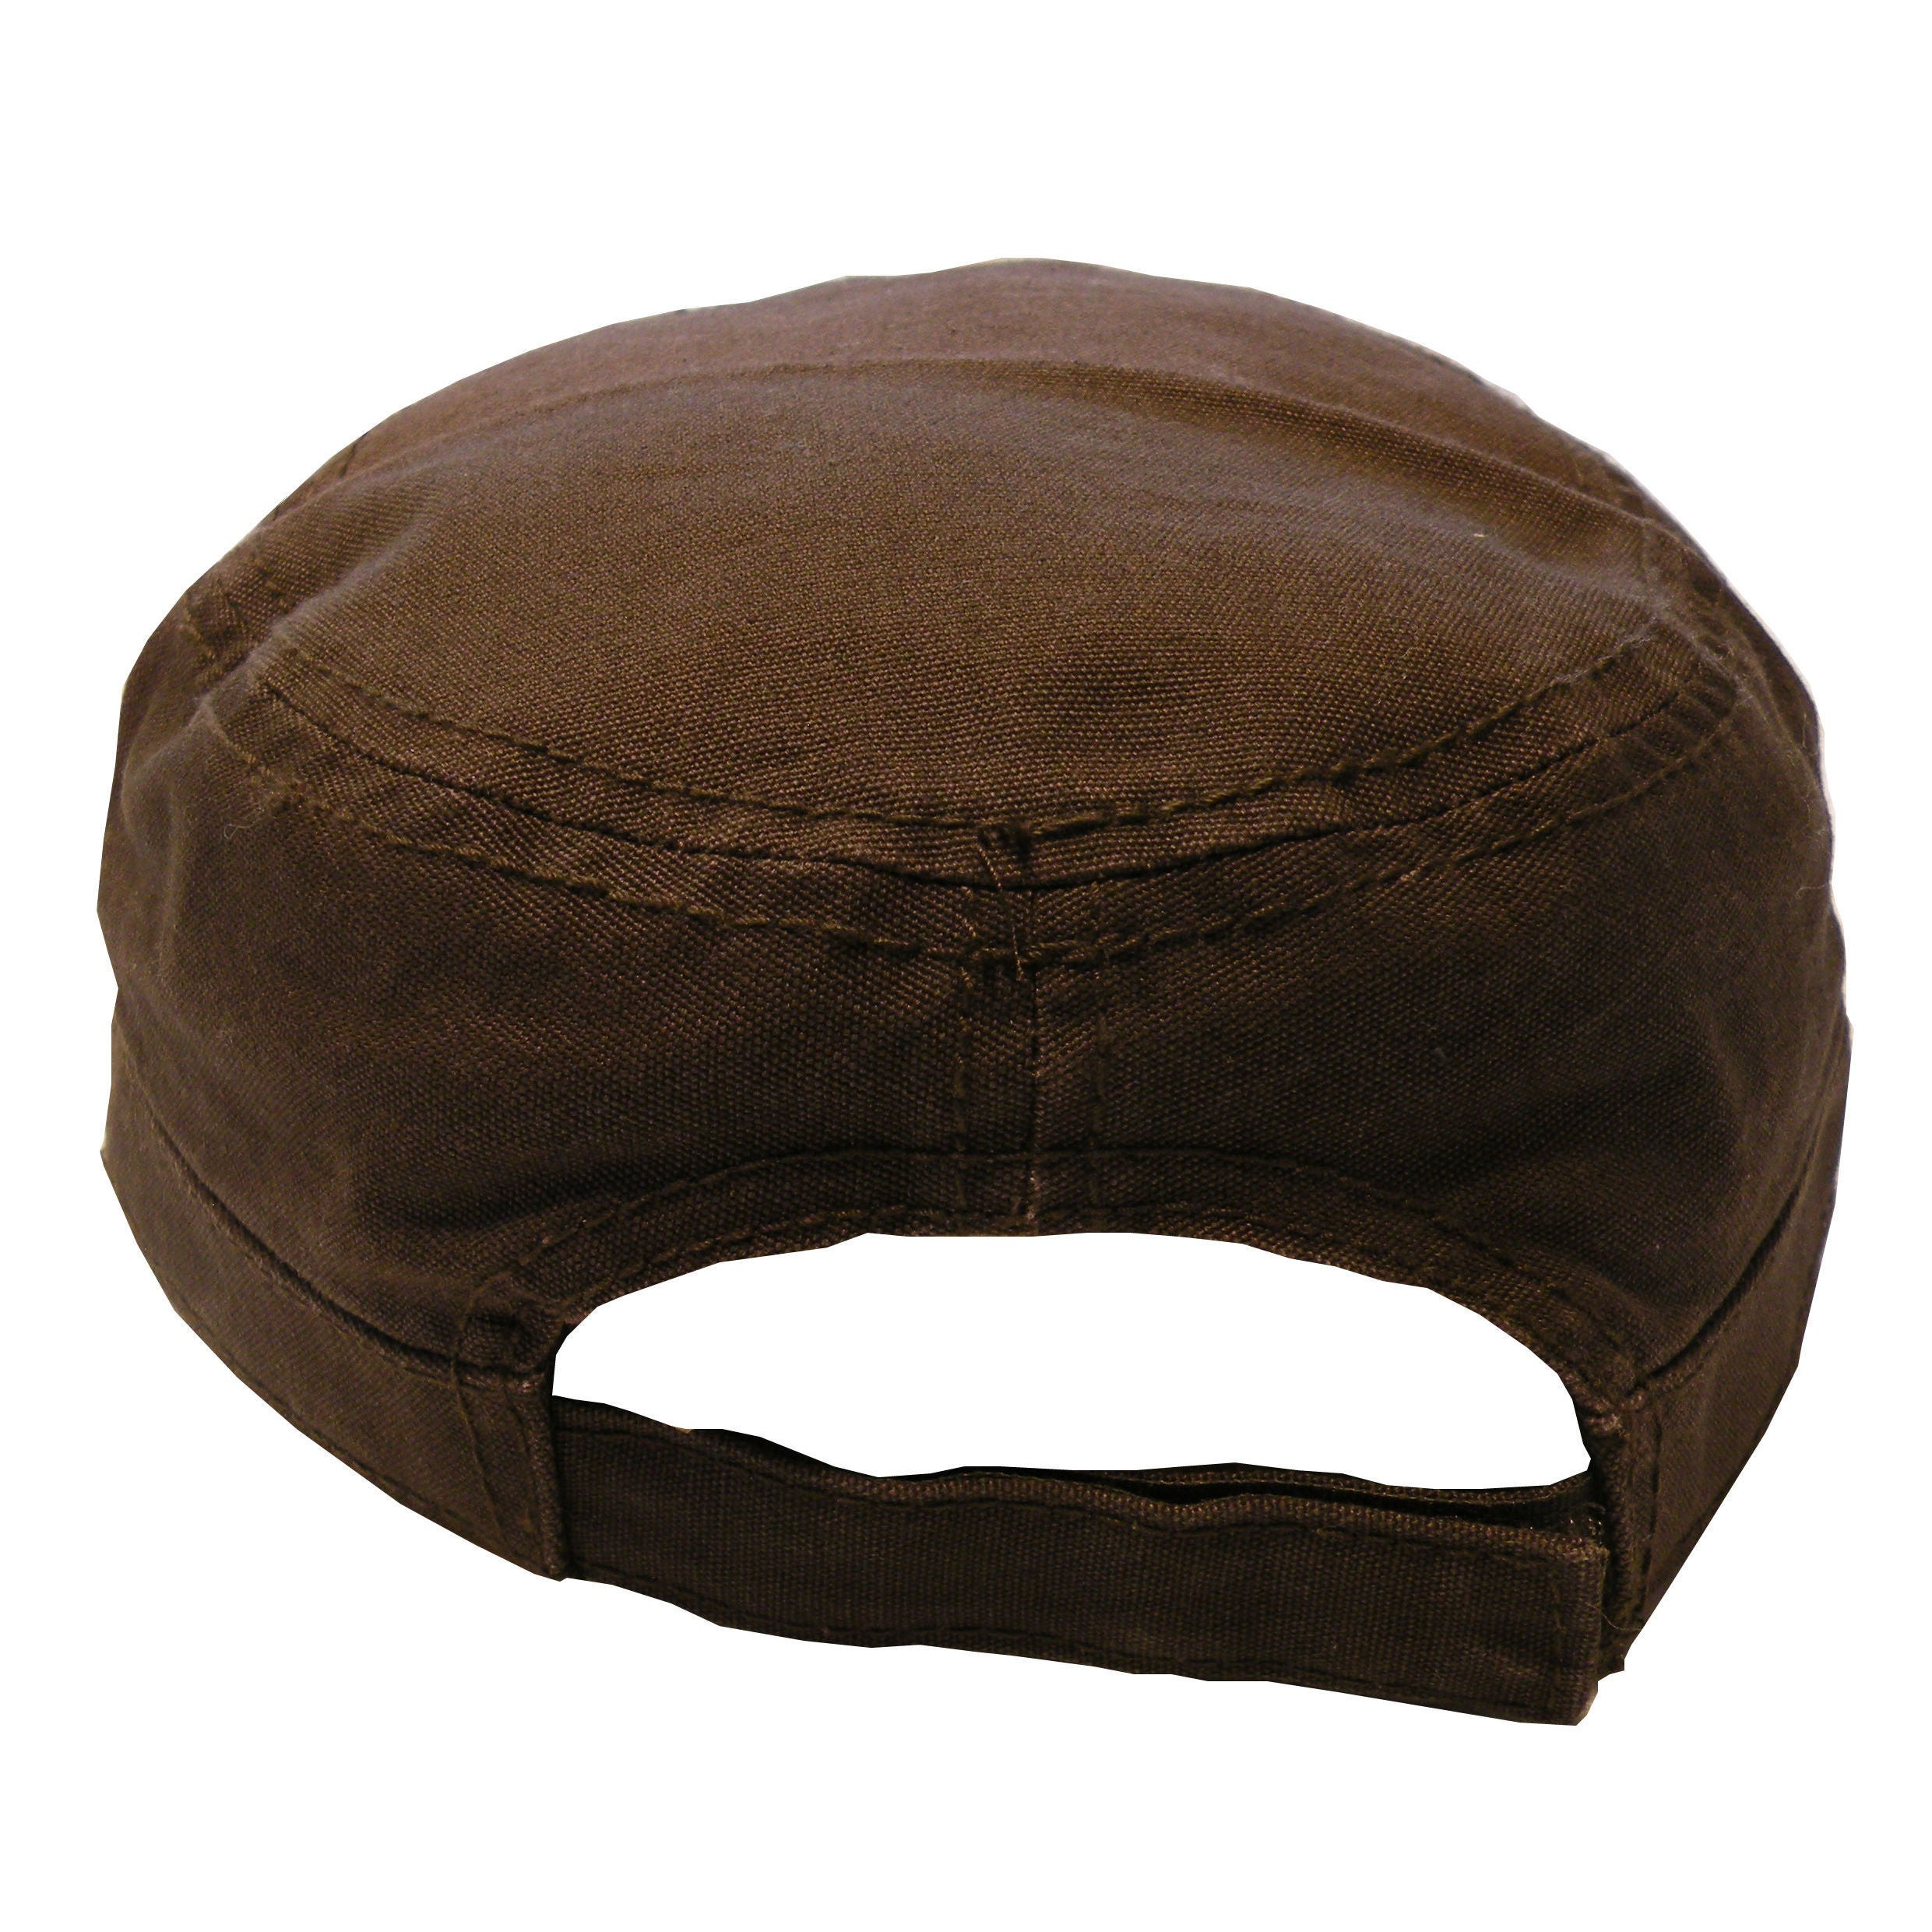 Shop Pug Gear Women s Brown Floral Cadet Hat - Free Shipping On Orders Over   45 - Overstock.com - 8786543 8f892a7a3